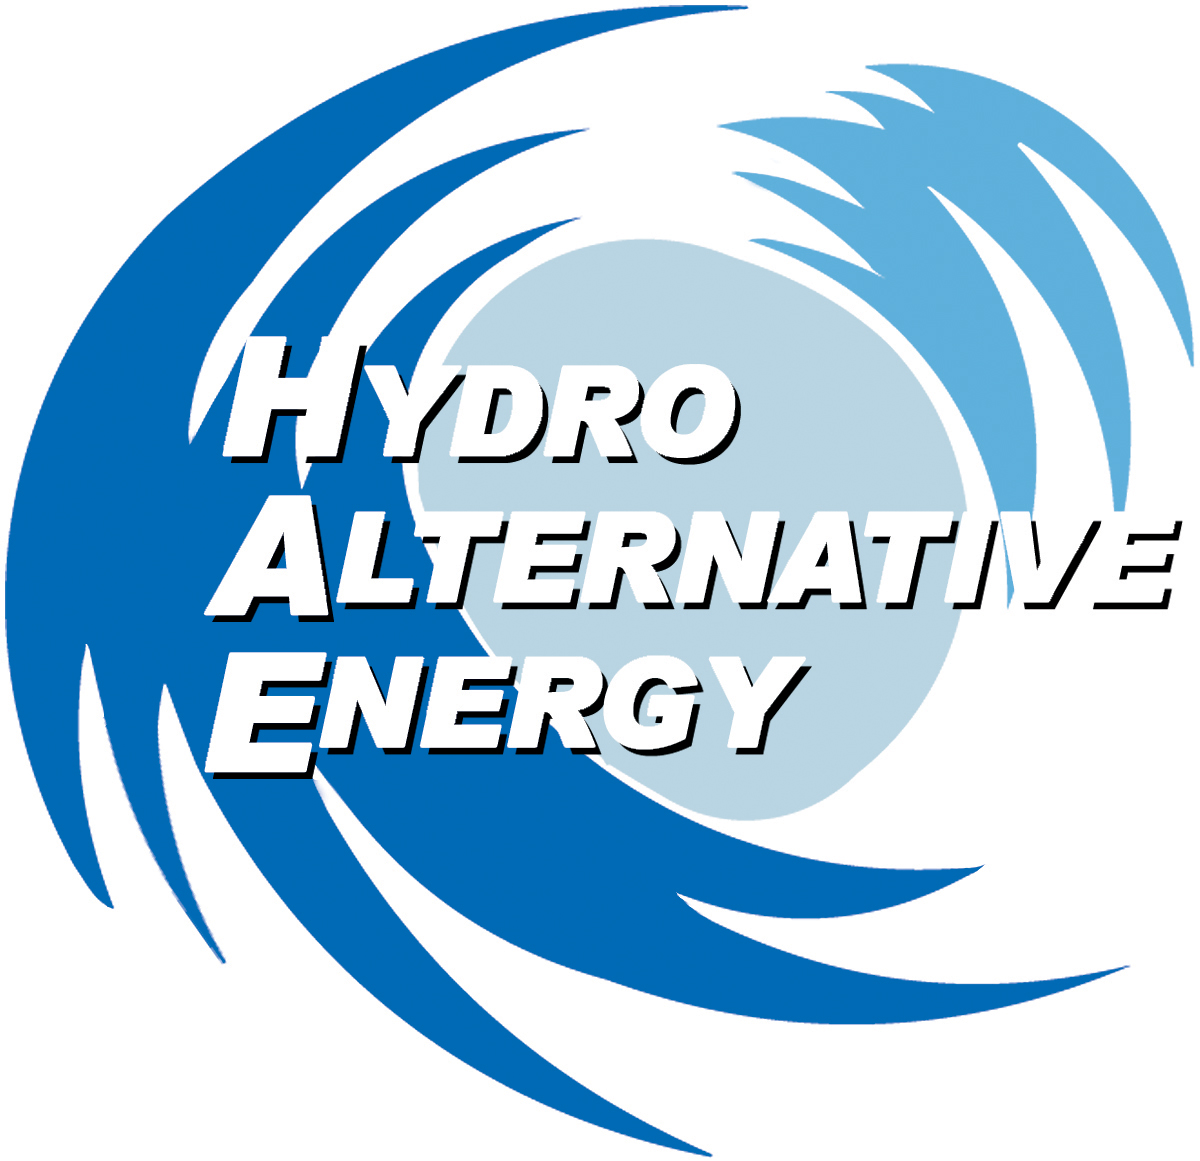 Hydro Alternative Energy Logo